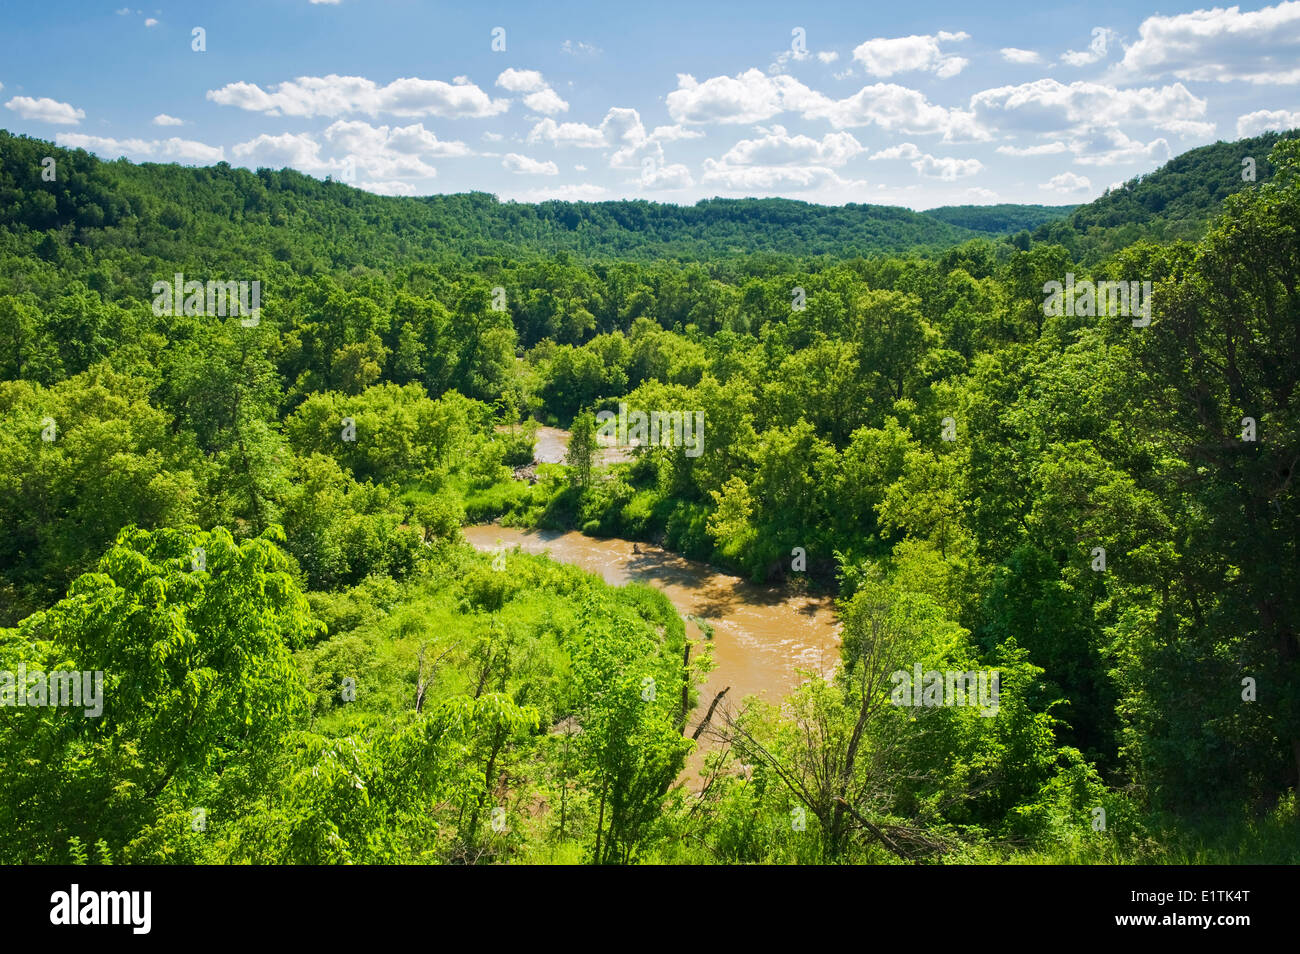 spring foliage in the Pembina Valley, Manitoba, Canada - Stock Image